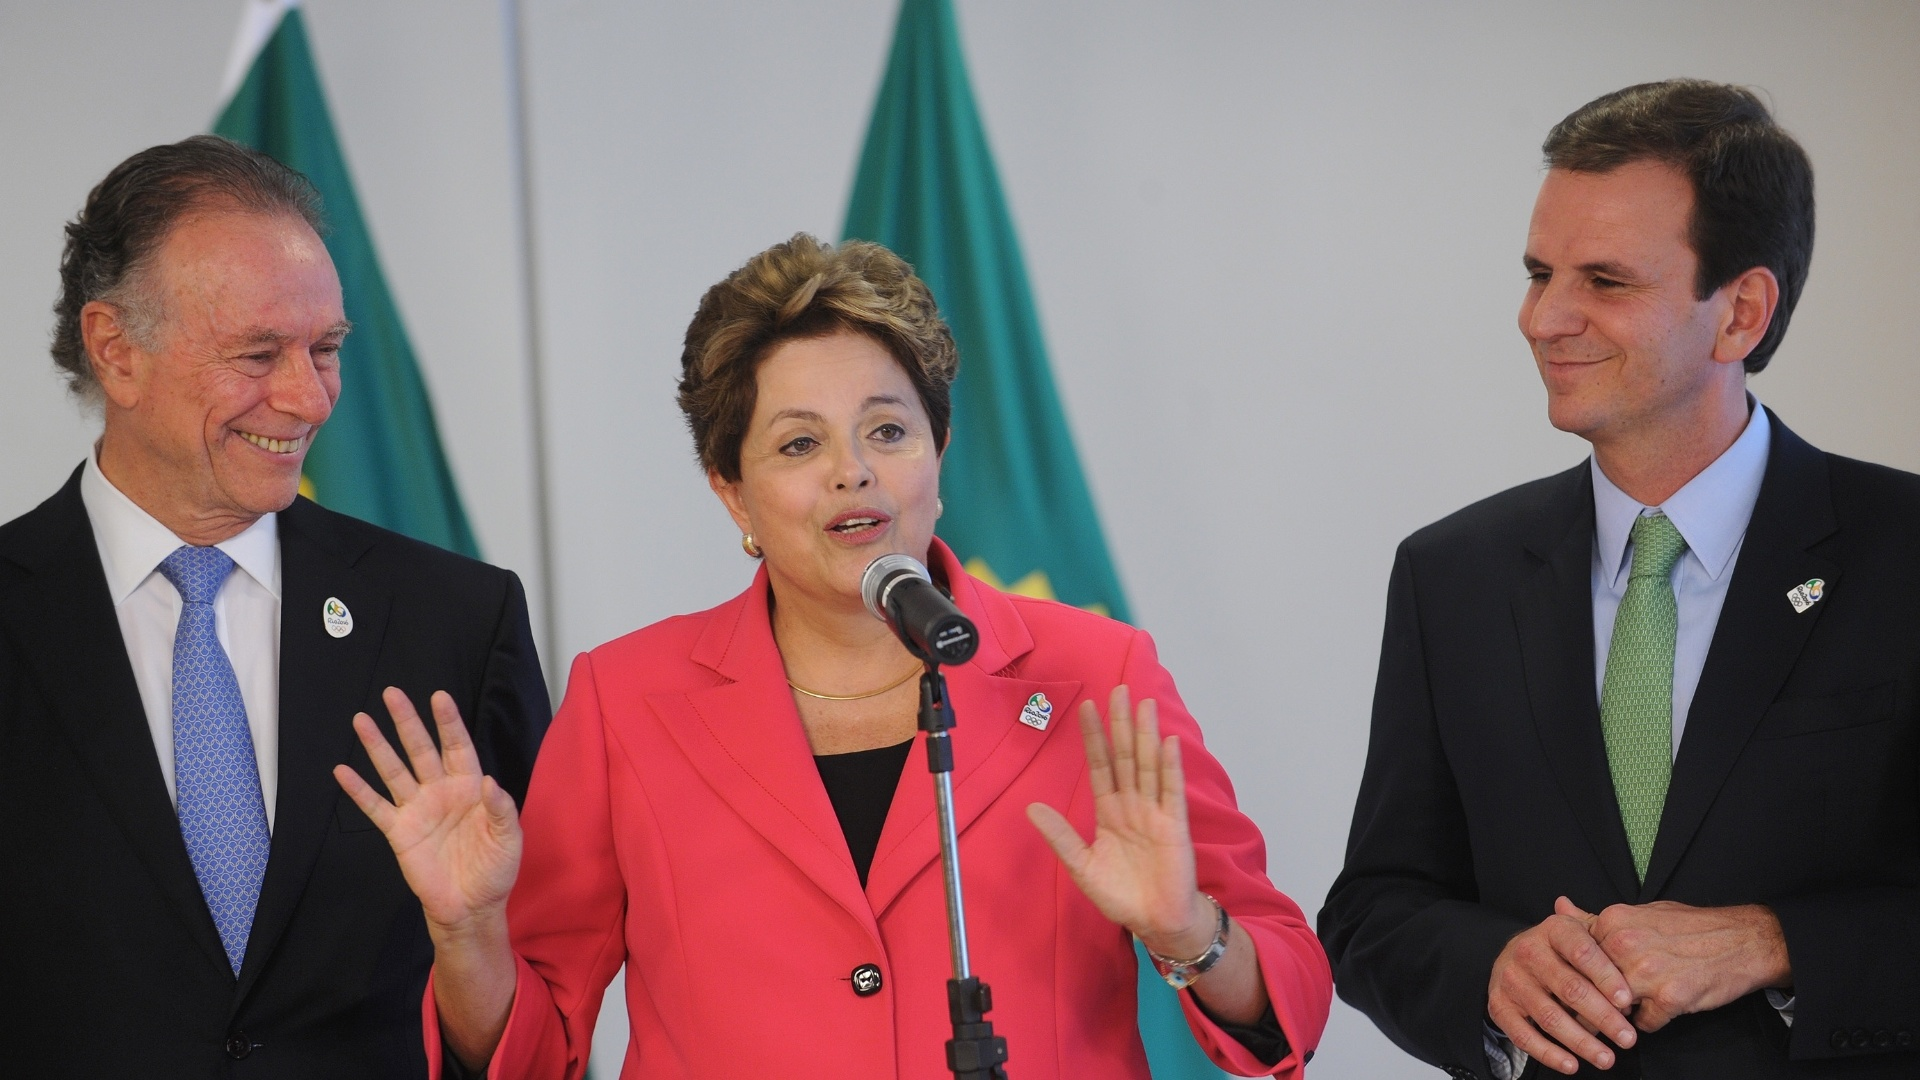 Presidente Dilma discursa aps receber bandeira olmpica de Carlos Arthur Nuzman, presidente do COB, e Eduardo Paes, prefeito do Rio de Janeiro